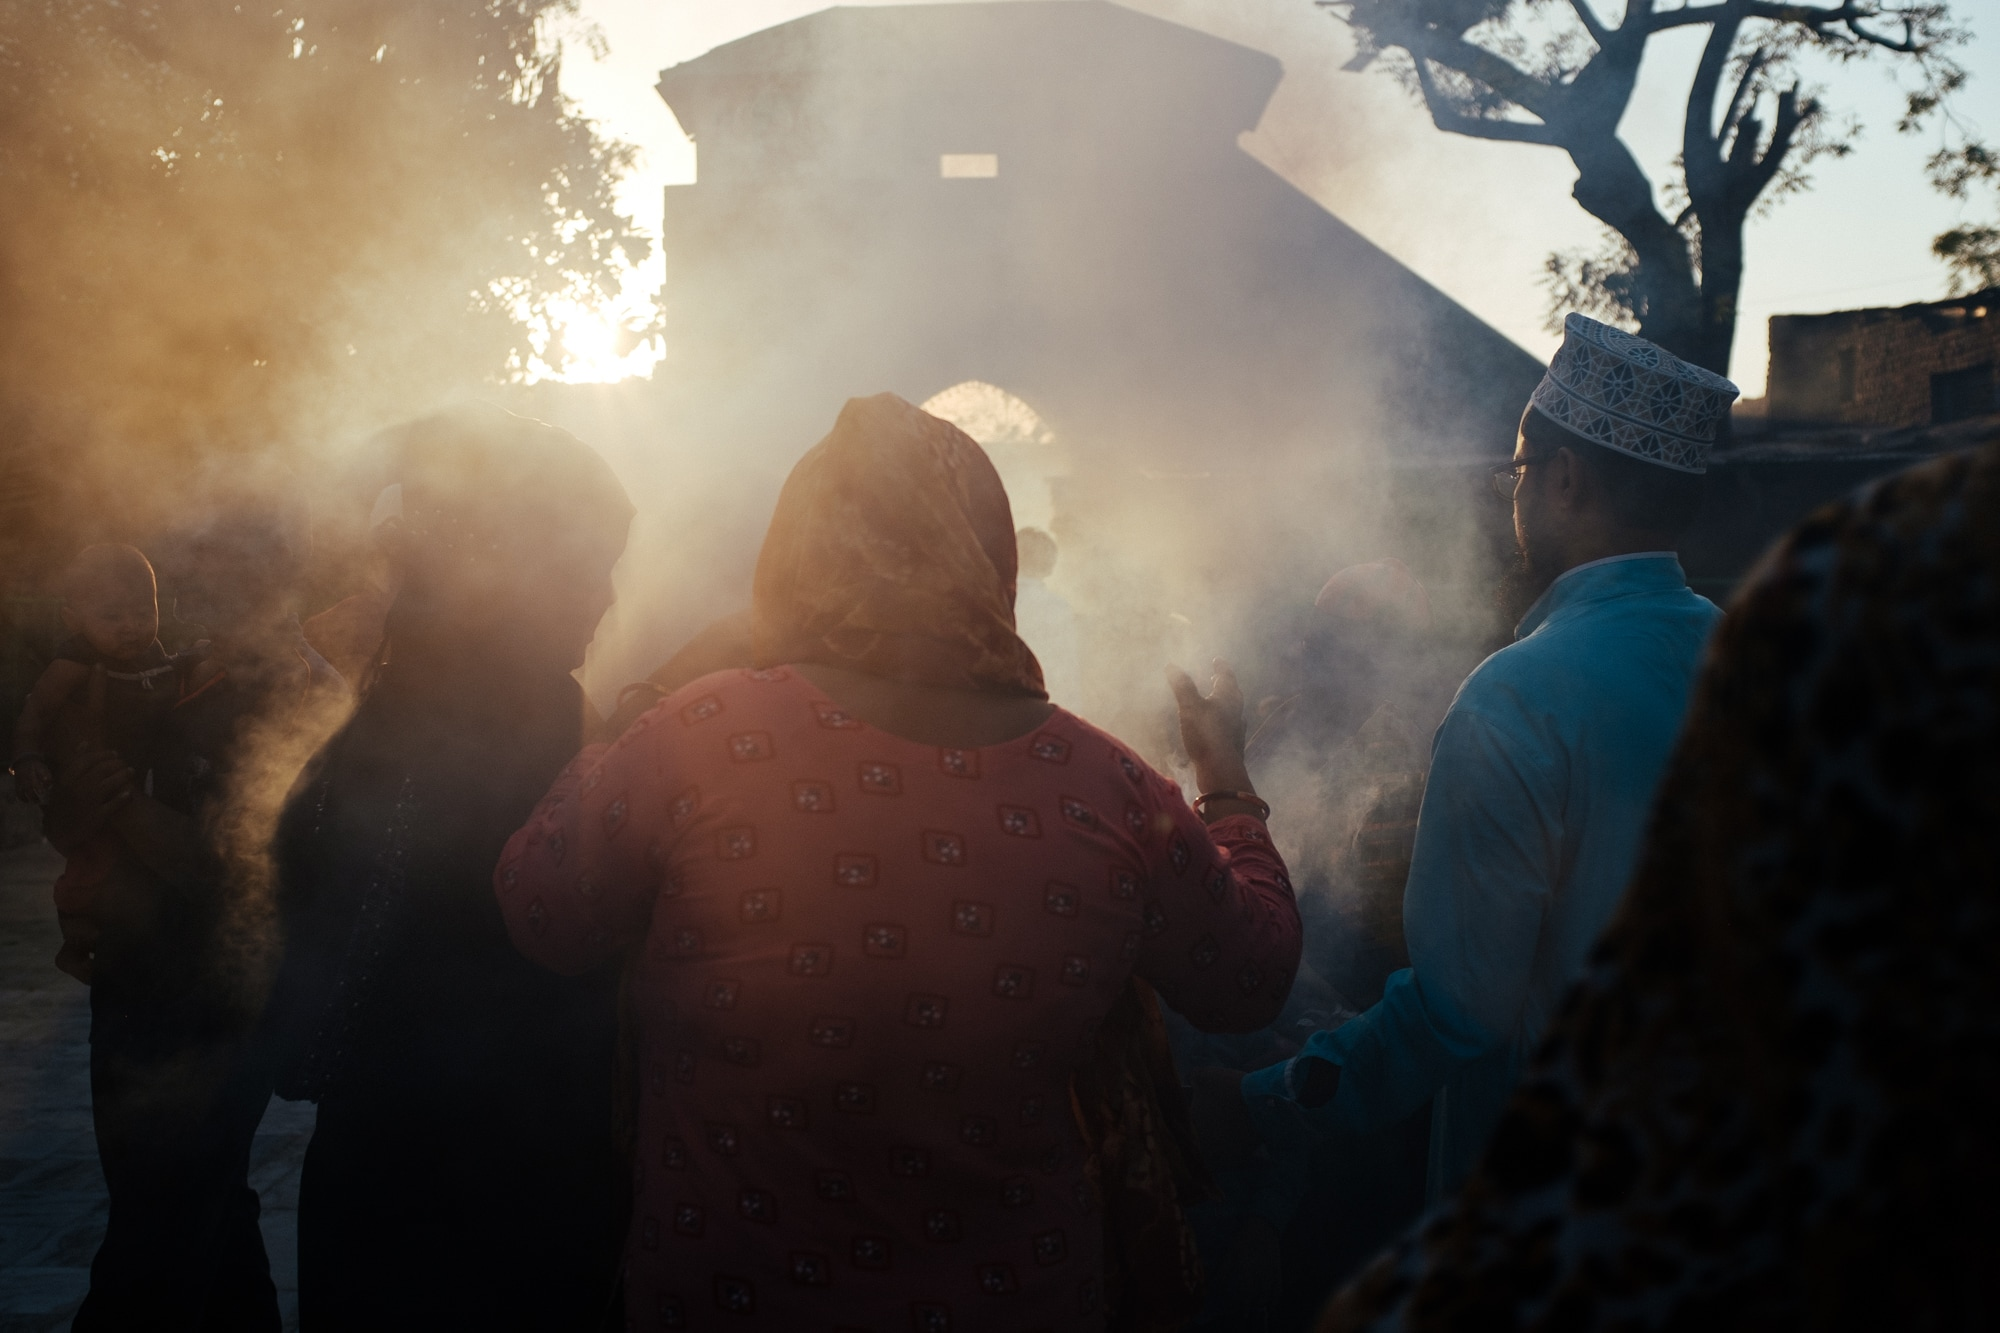 A crowd of devotees during the daily gum benzoin or frankincense burning ritual. Burning gum benzoin is a common daily or ceremonial practice in Indian households, temples, and shrines.